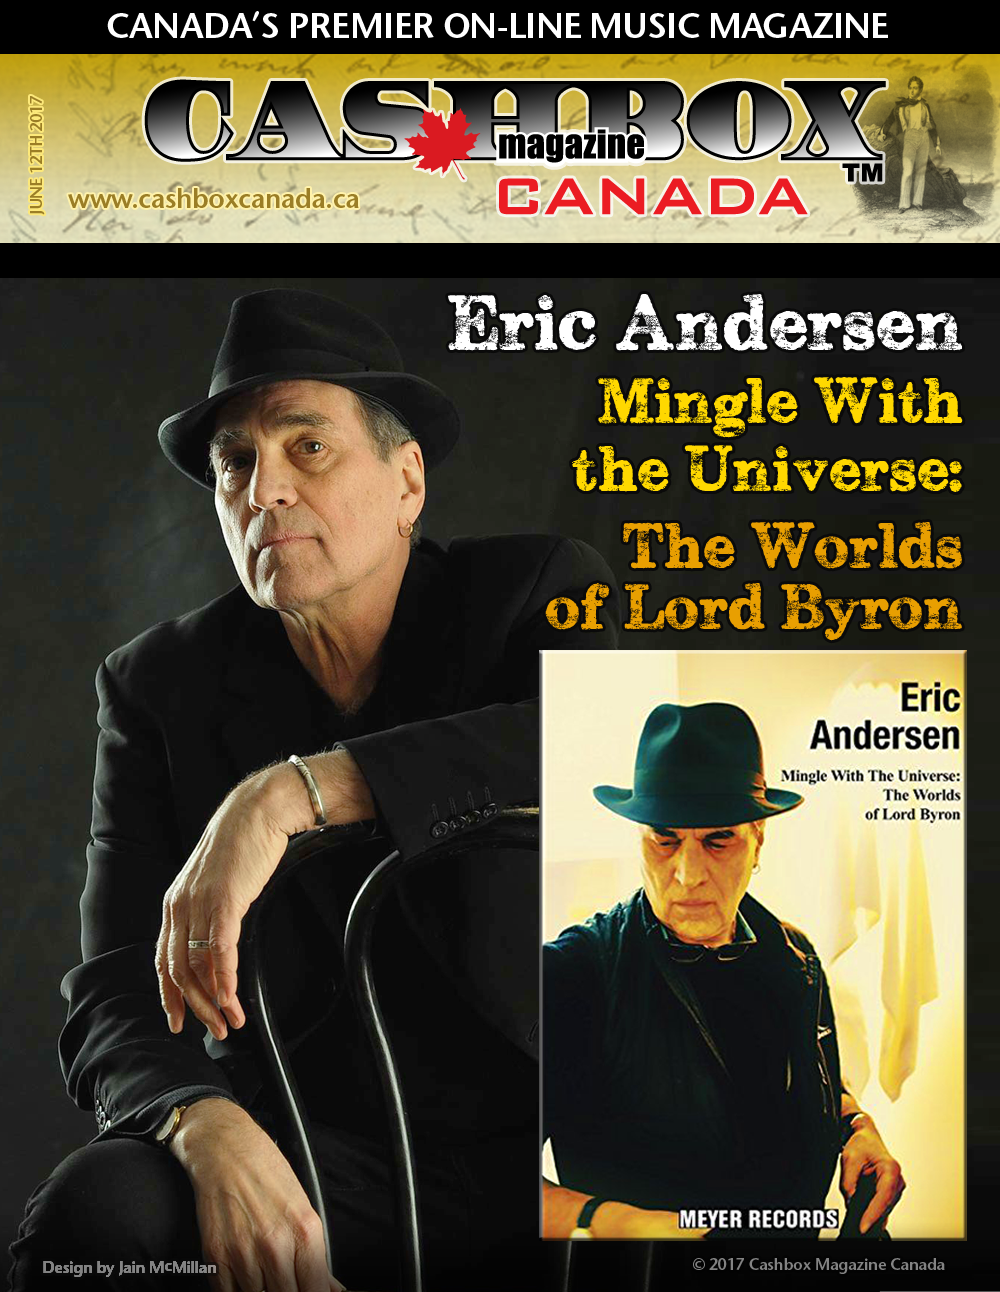 Eric Andersen Mingle With the Universe: The Worlds of Lord Byron